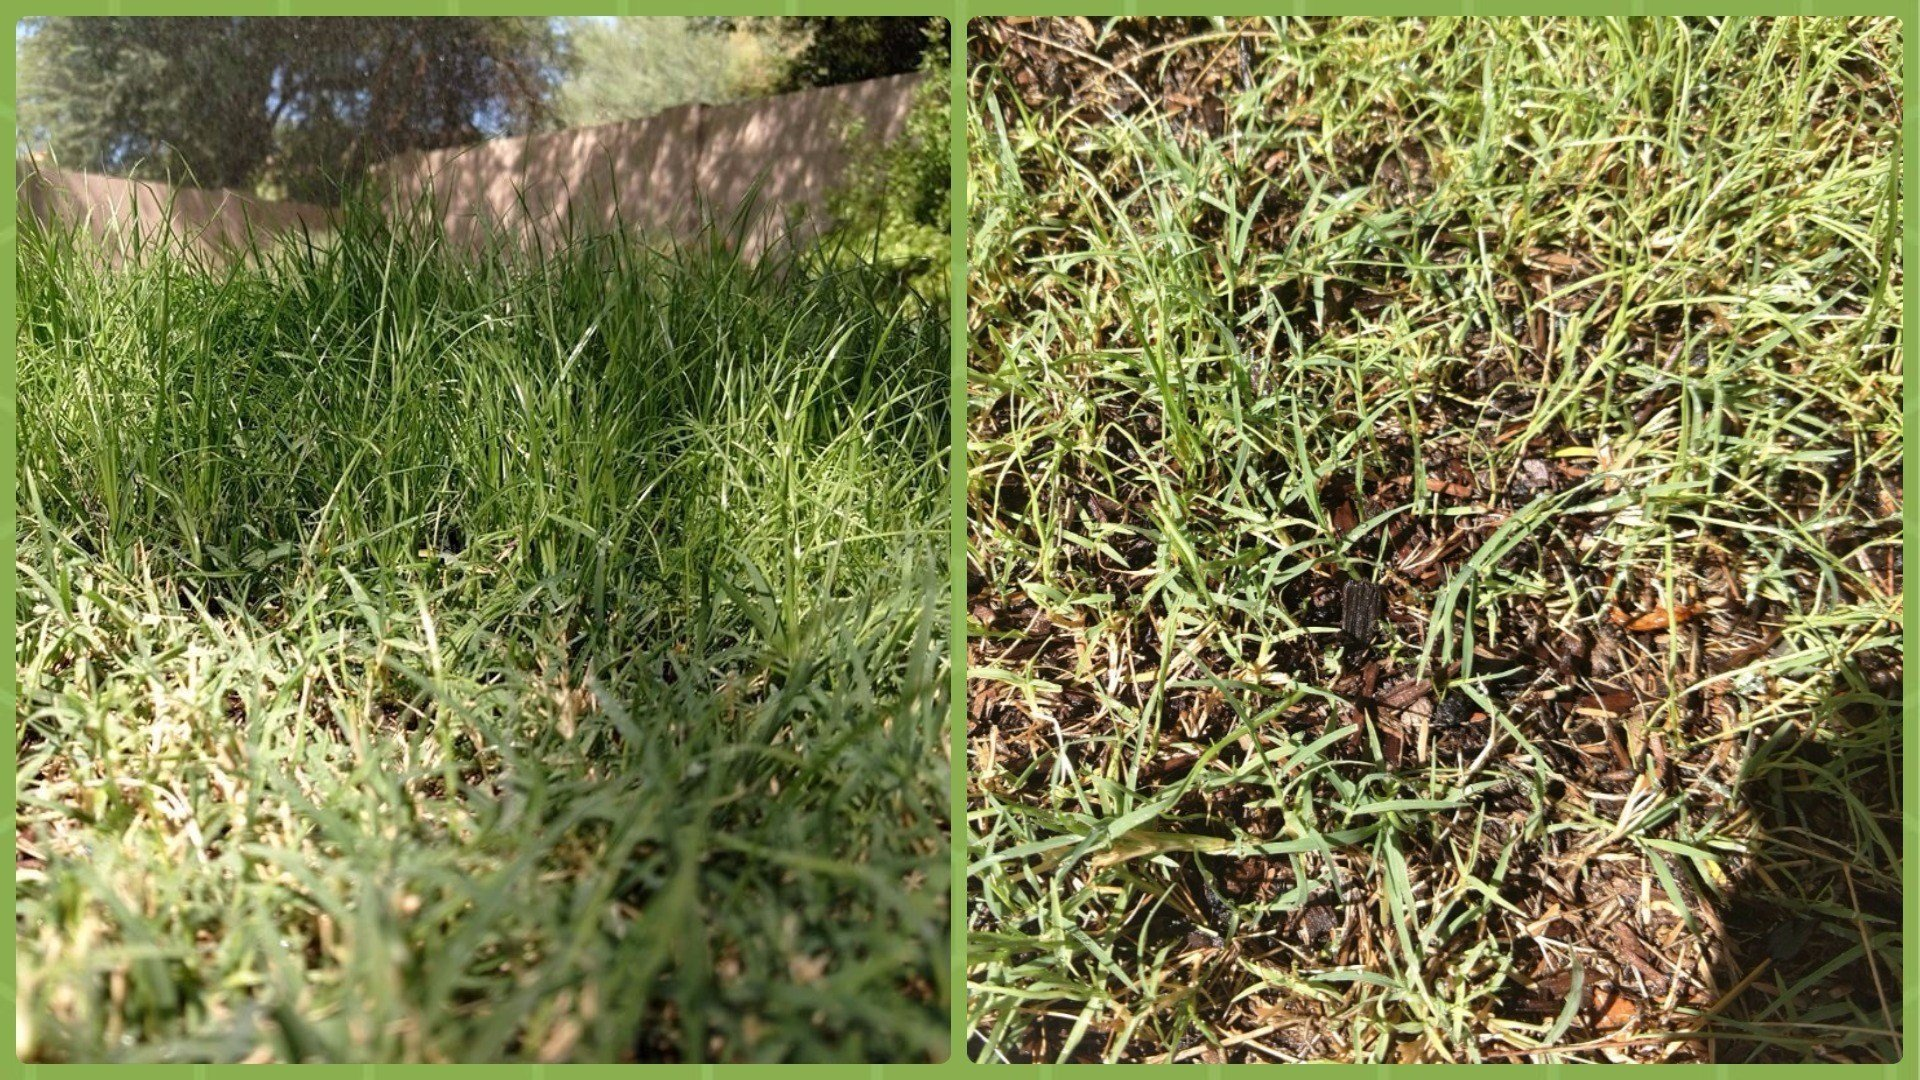 Left: Some of the rye is doing great! Right: What happened here? No rye; just Bermuda.